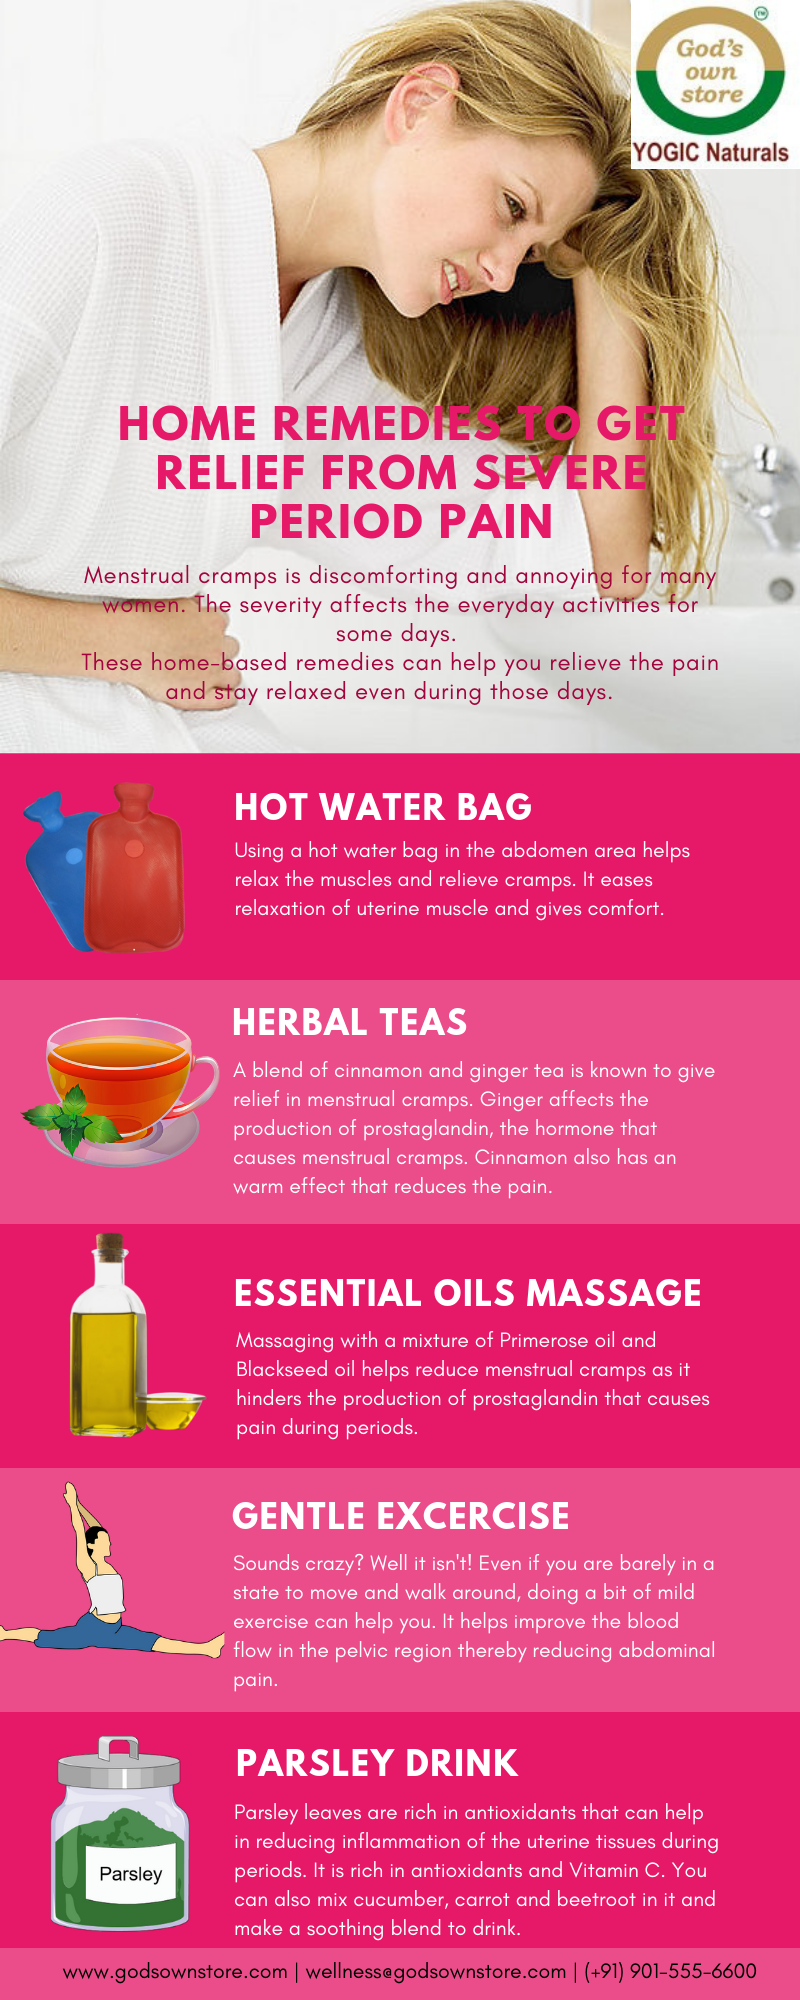 Home Remedies to get relief from Severe Period Pain